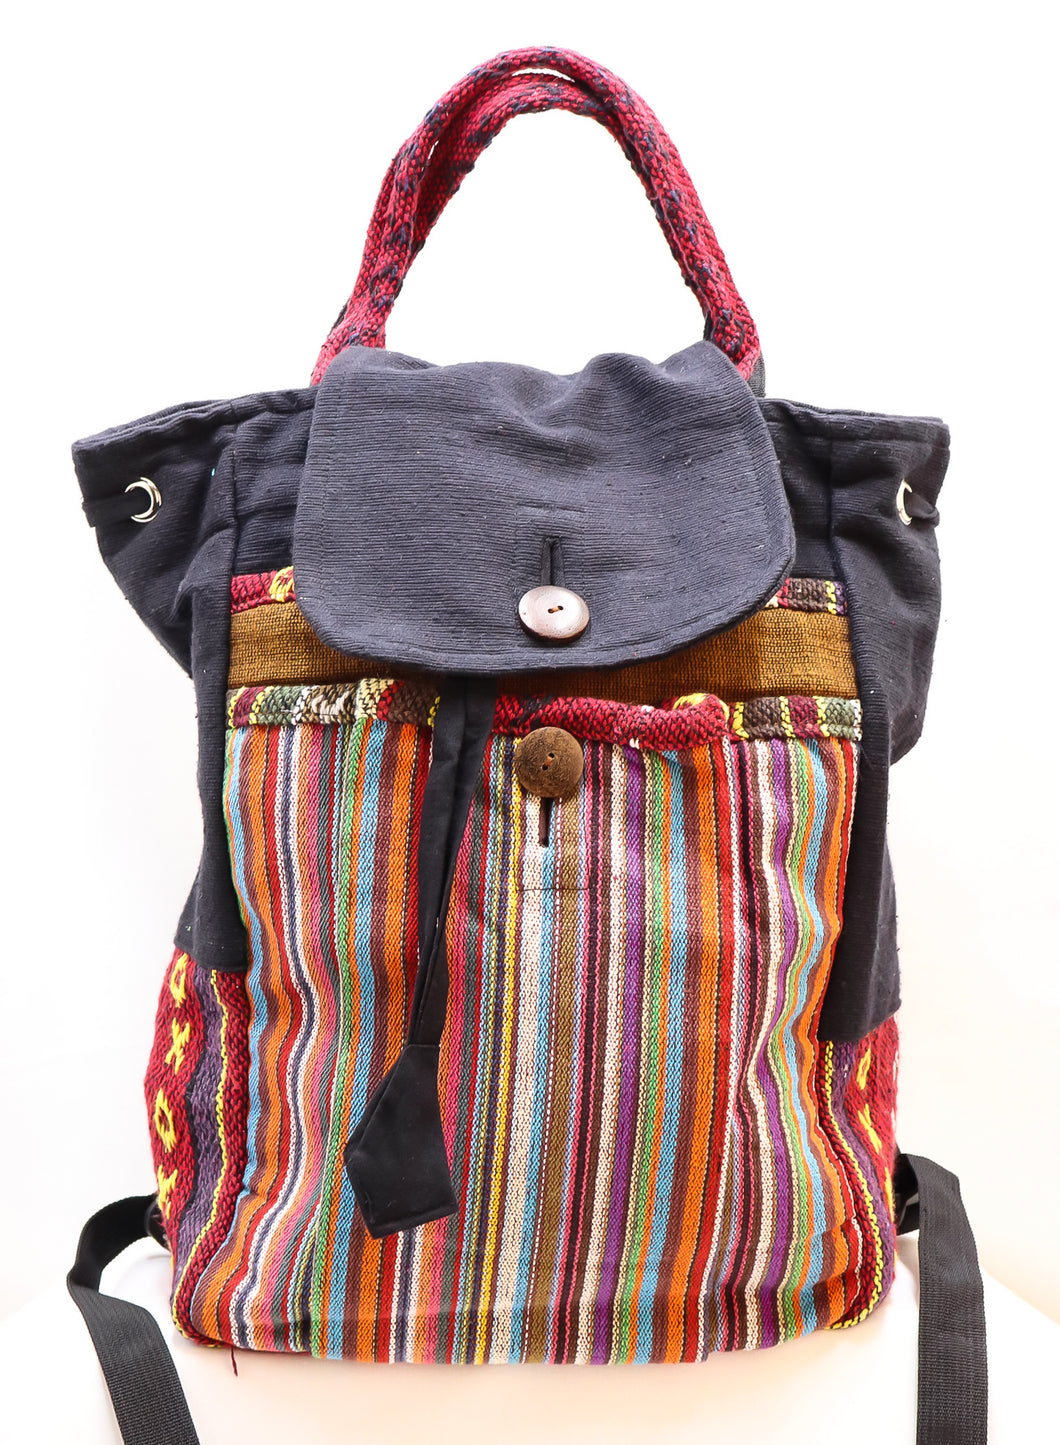 HANDMADE WOVEN MULTI-COLORED DRAWSTRING HANDBAG & BACKPACK